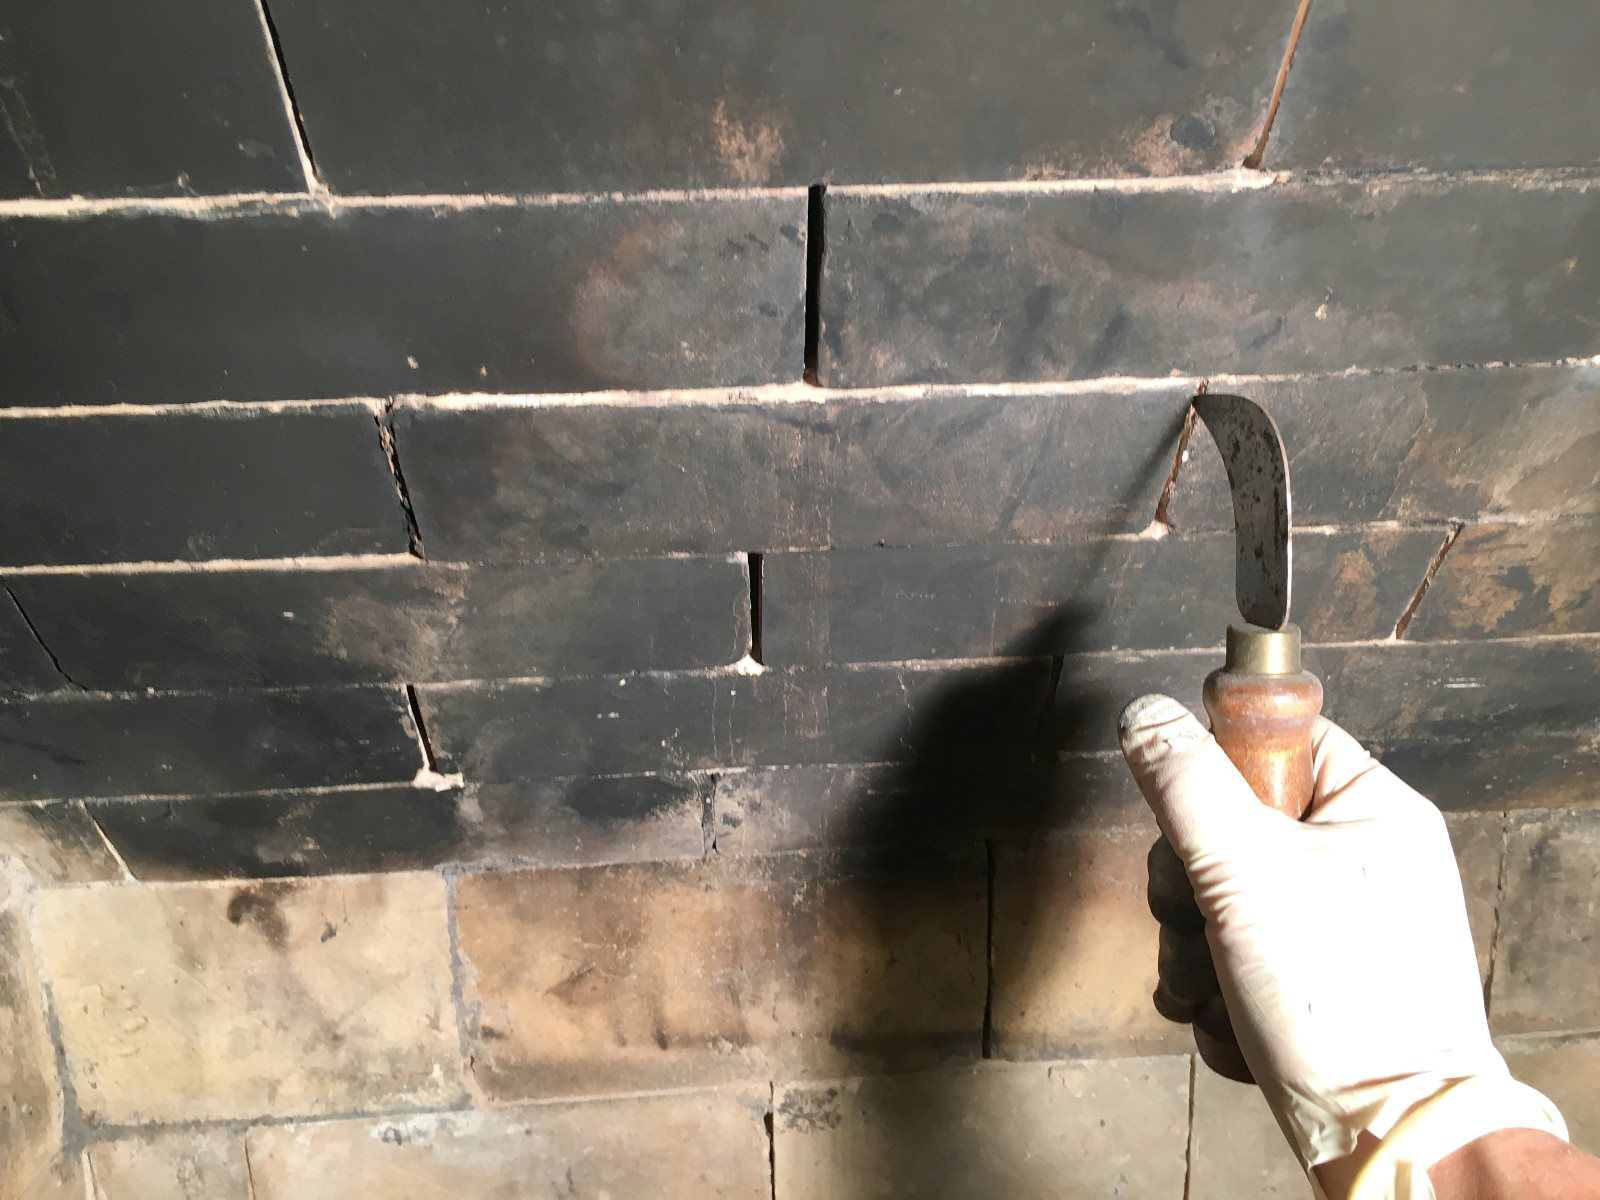 Learn how to easily fix mortar gaps or holes in between fire brick joints in your fireplace to prevent house fires.